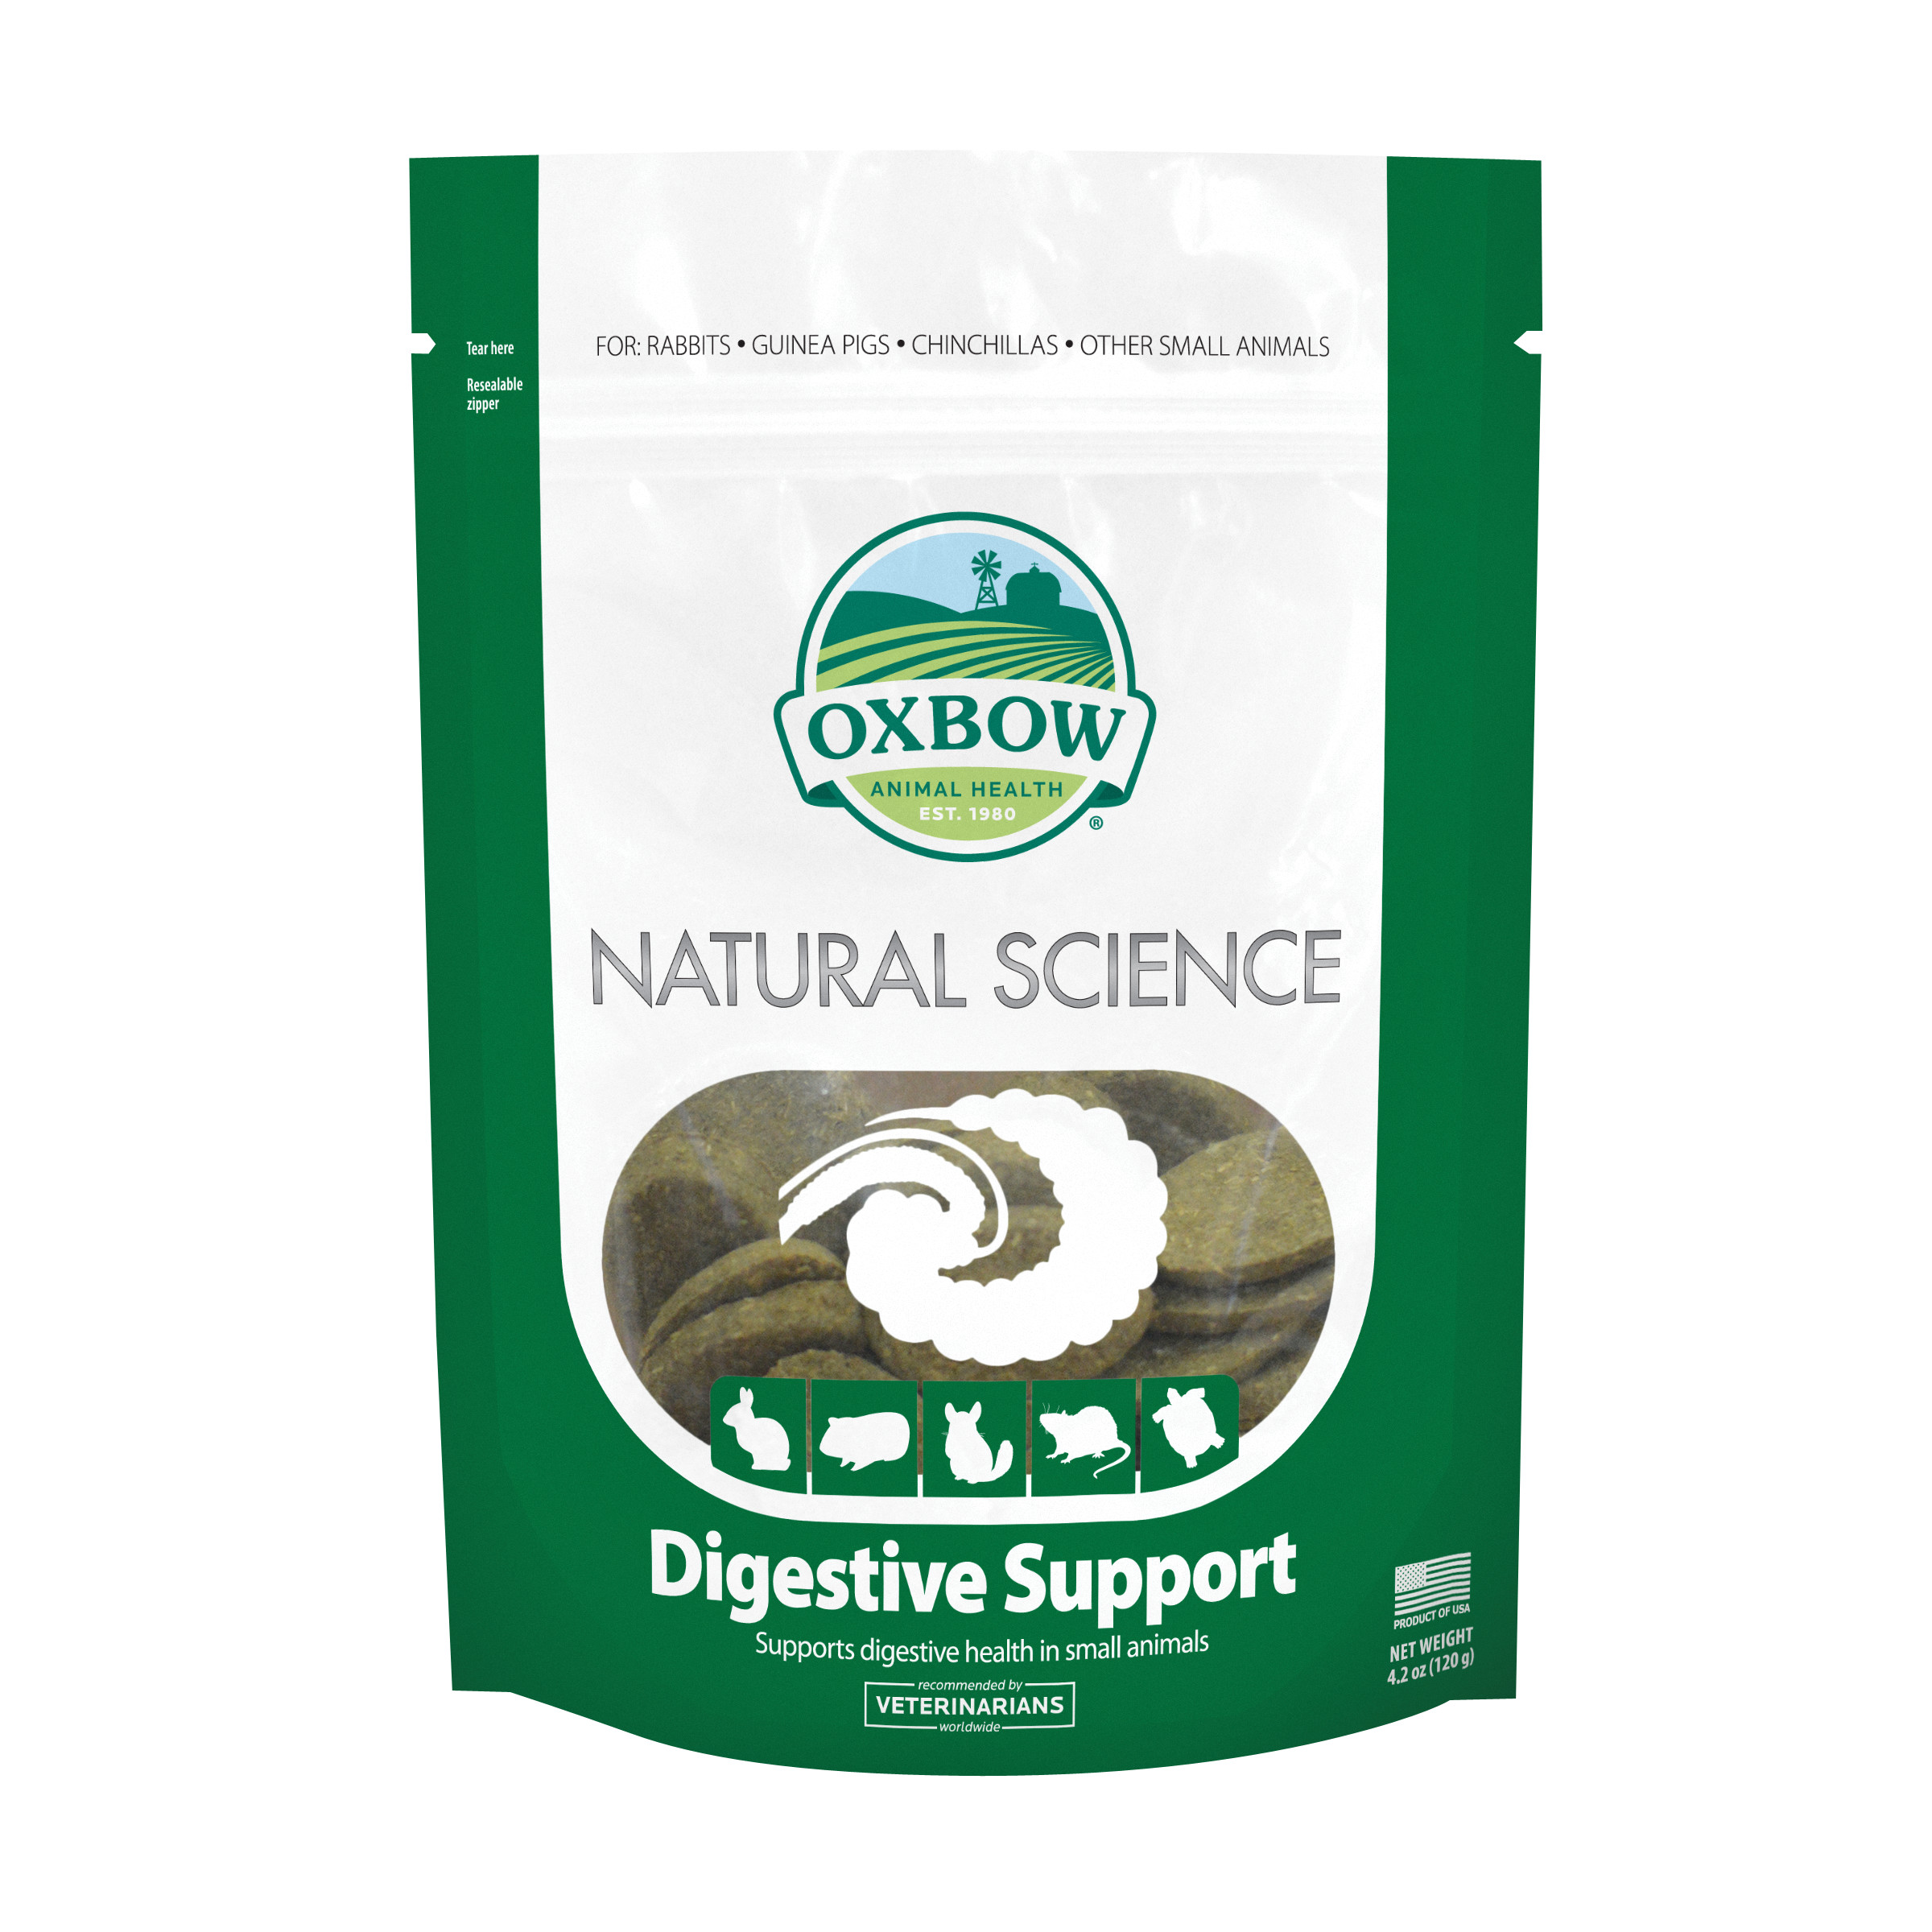 Digestive Support - 119 g